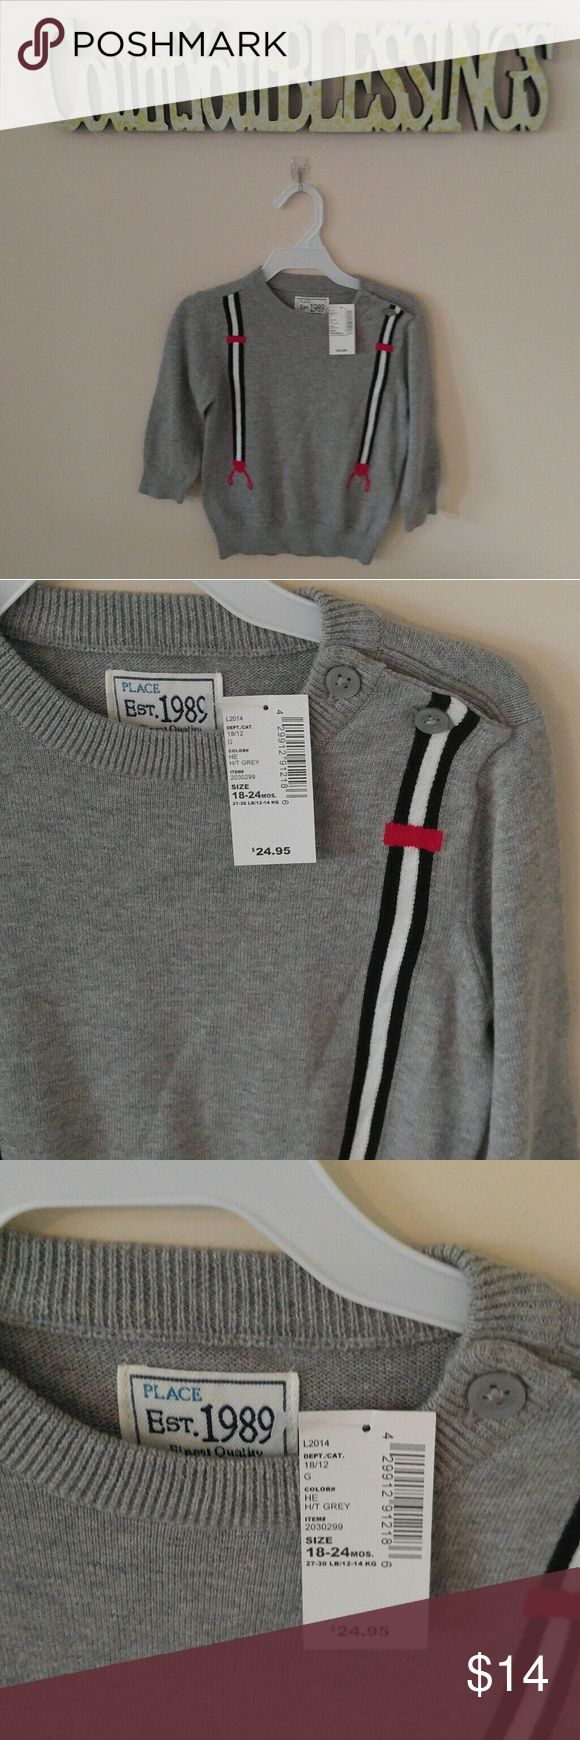 3 for $25 NWT Children's Place Suspender Sweater 3 for $25- Purchase for list price, make offer OR BUNDLE & SAVE BIG!! Bundle 3 items (marked 3 for $25) and offer $25! MIX & MATCH- Womens, Juniors, Kids & Men Children's Place Shirts & Tops Sweaters